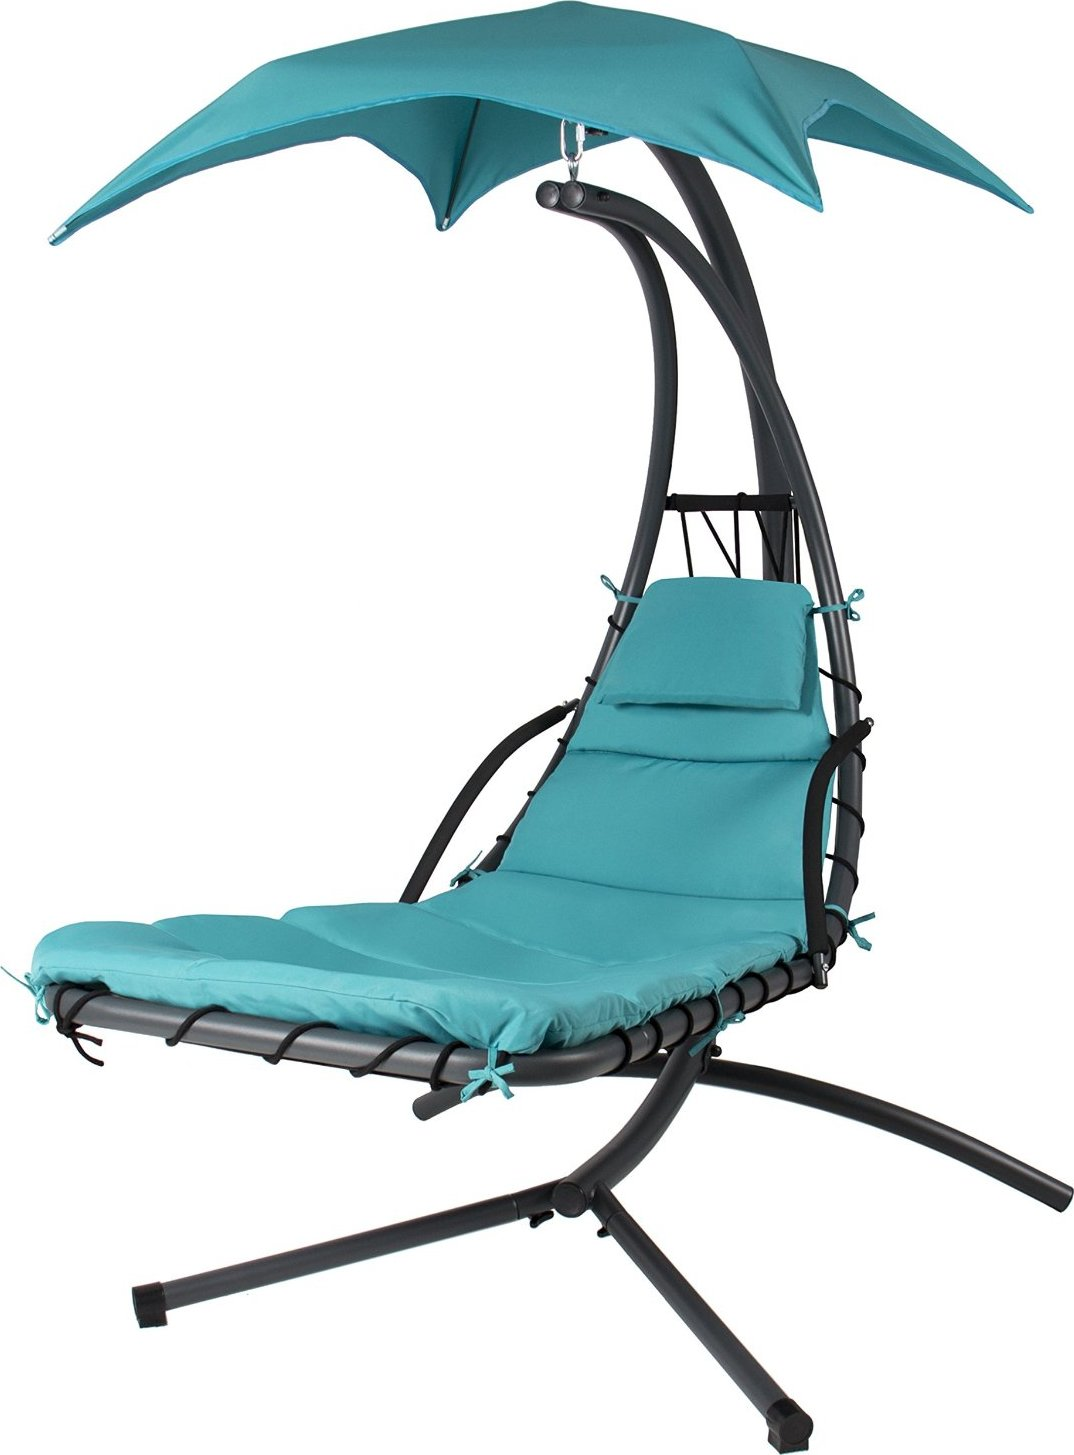 porch lounge chair bar chairs with arms best choice products swing hanging hammock